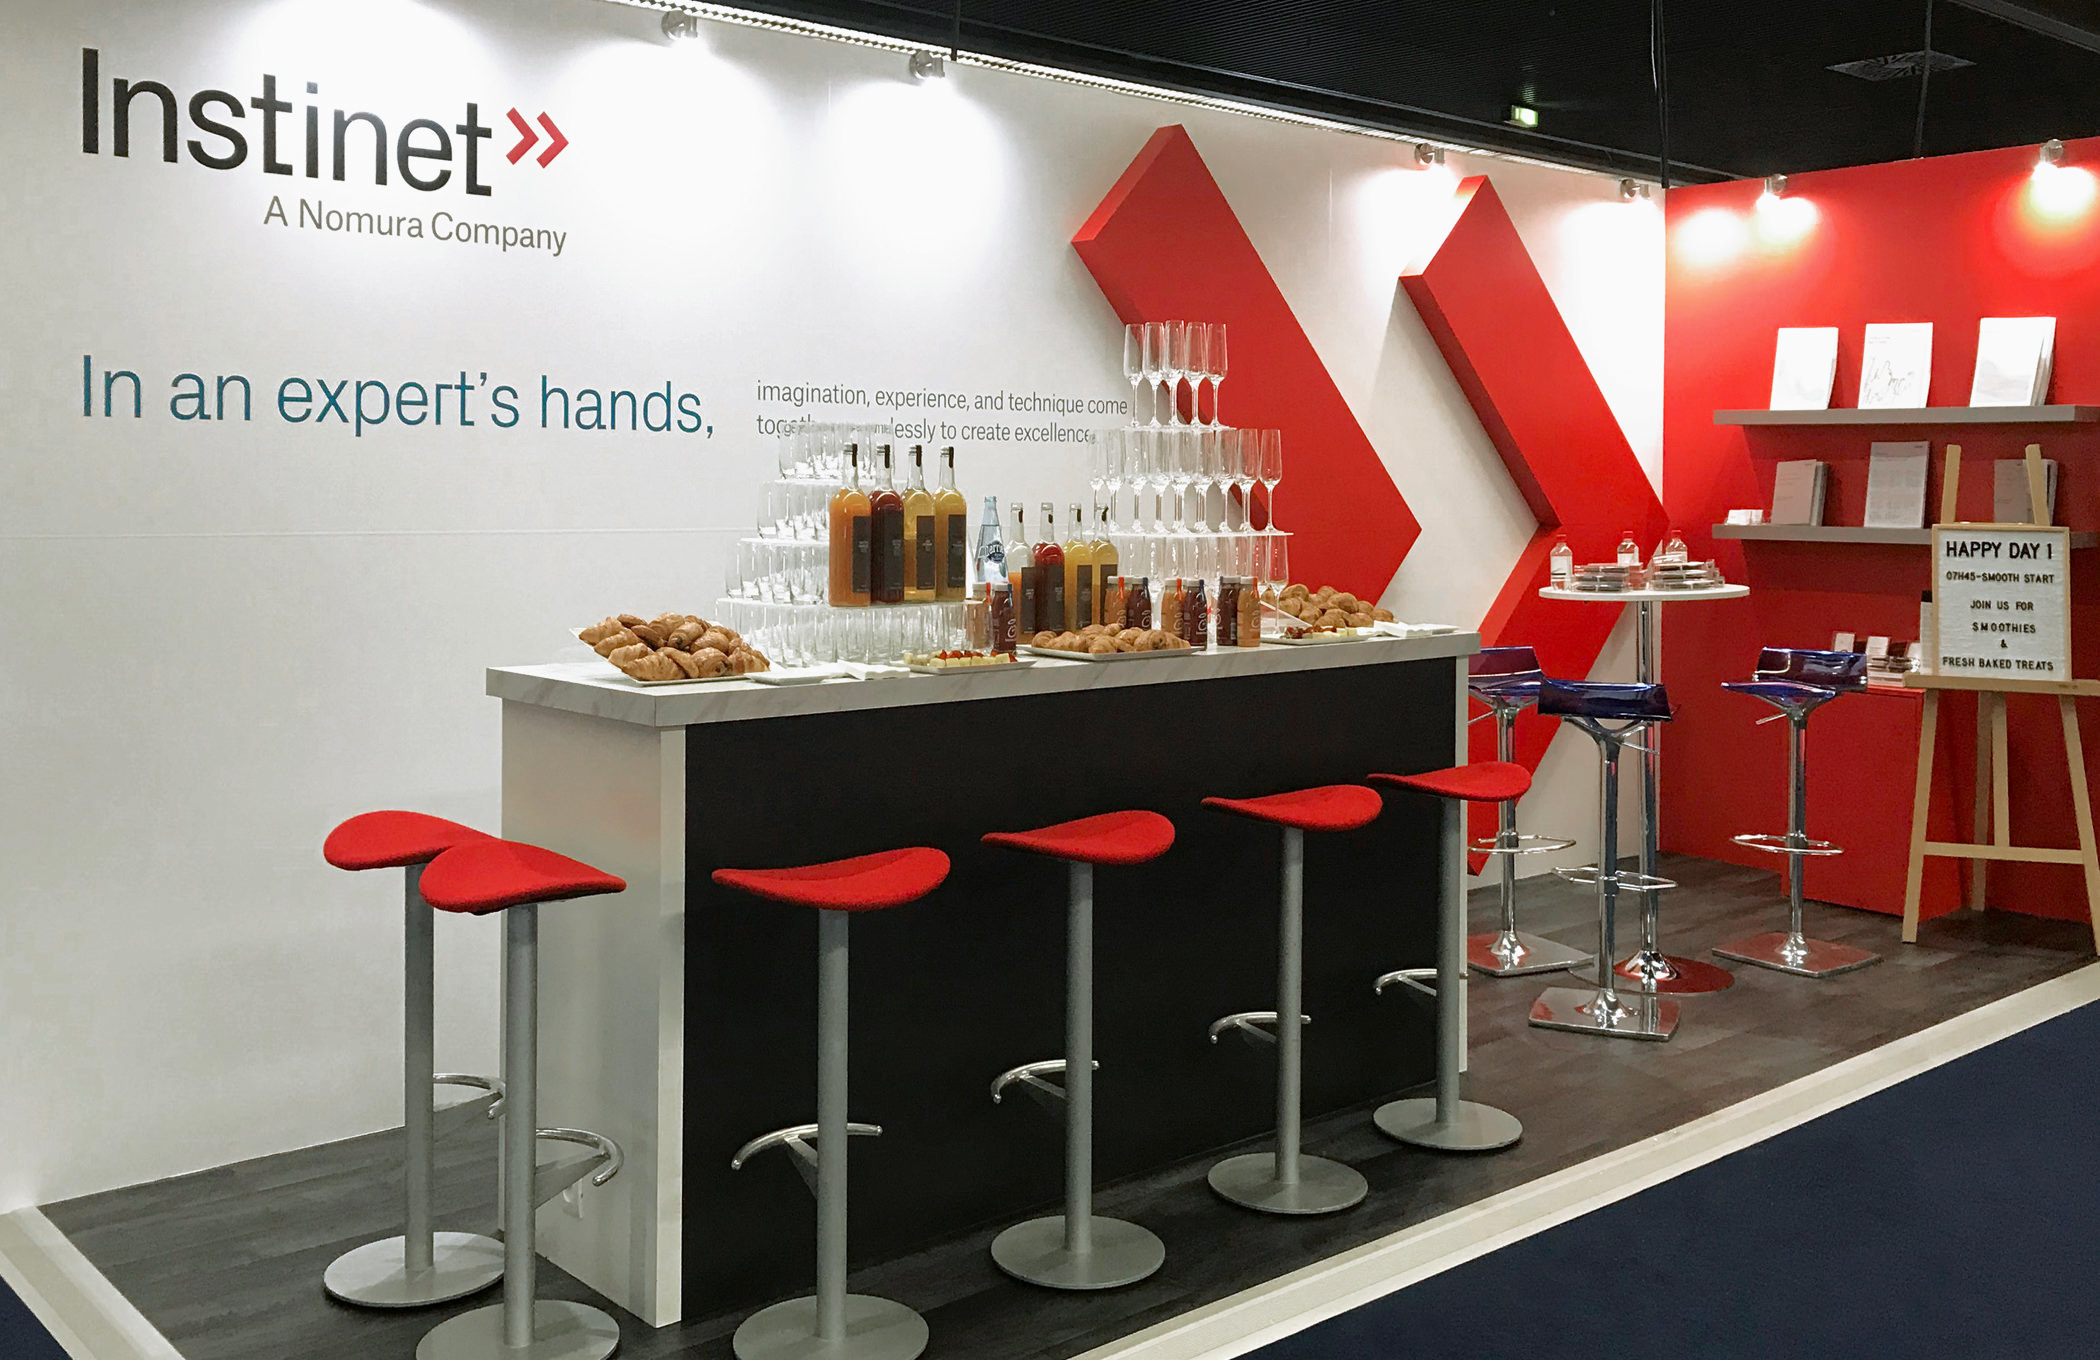 The Instinet reception booth at an industry conference with seating area in front of a giant, wall-mounted sculpture of the red, dual chevron brand emblem.